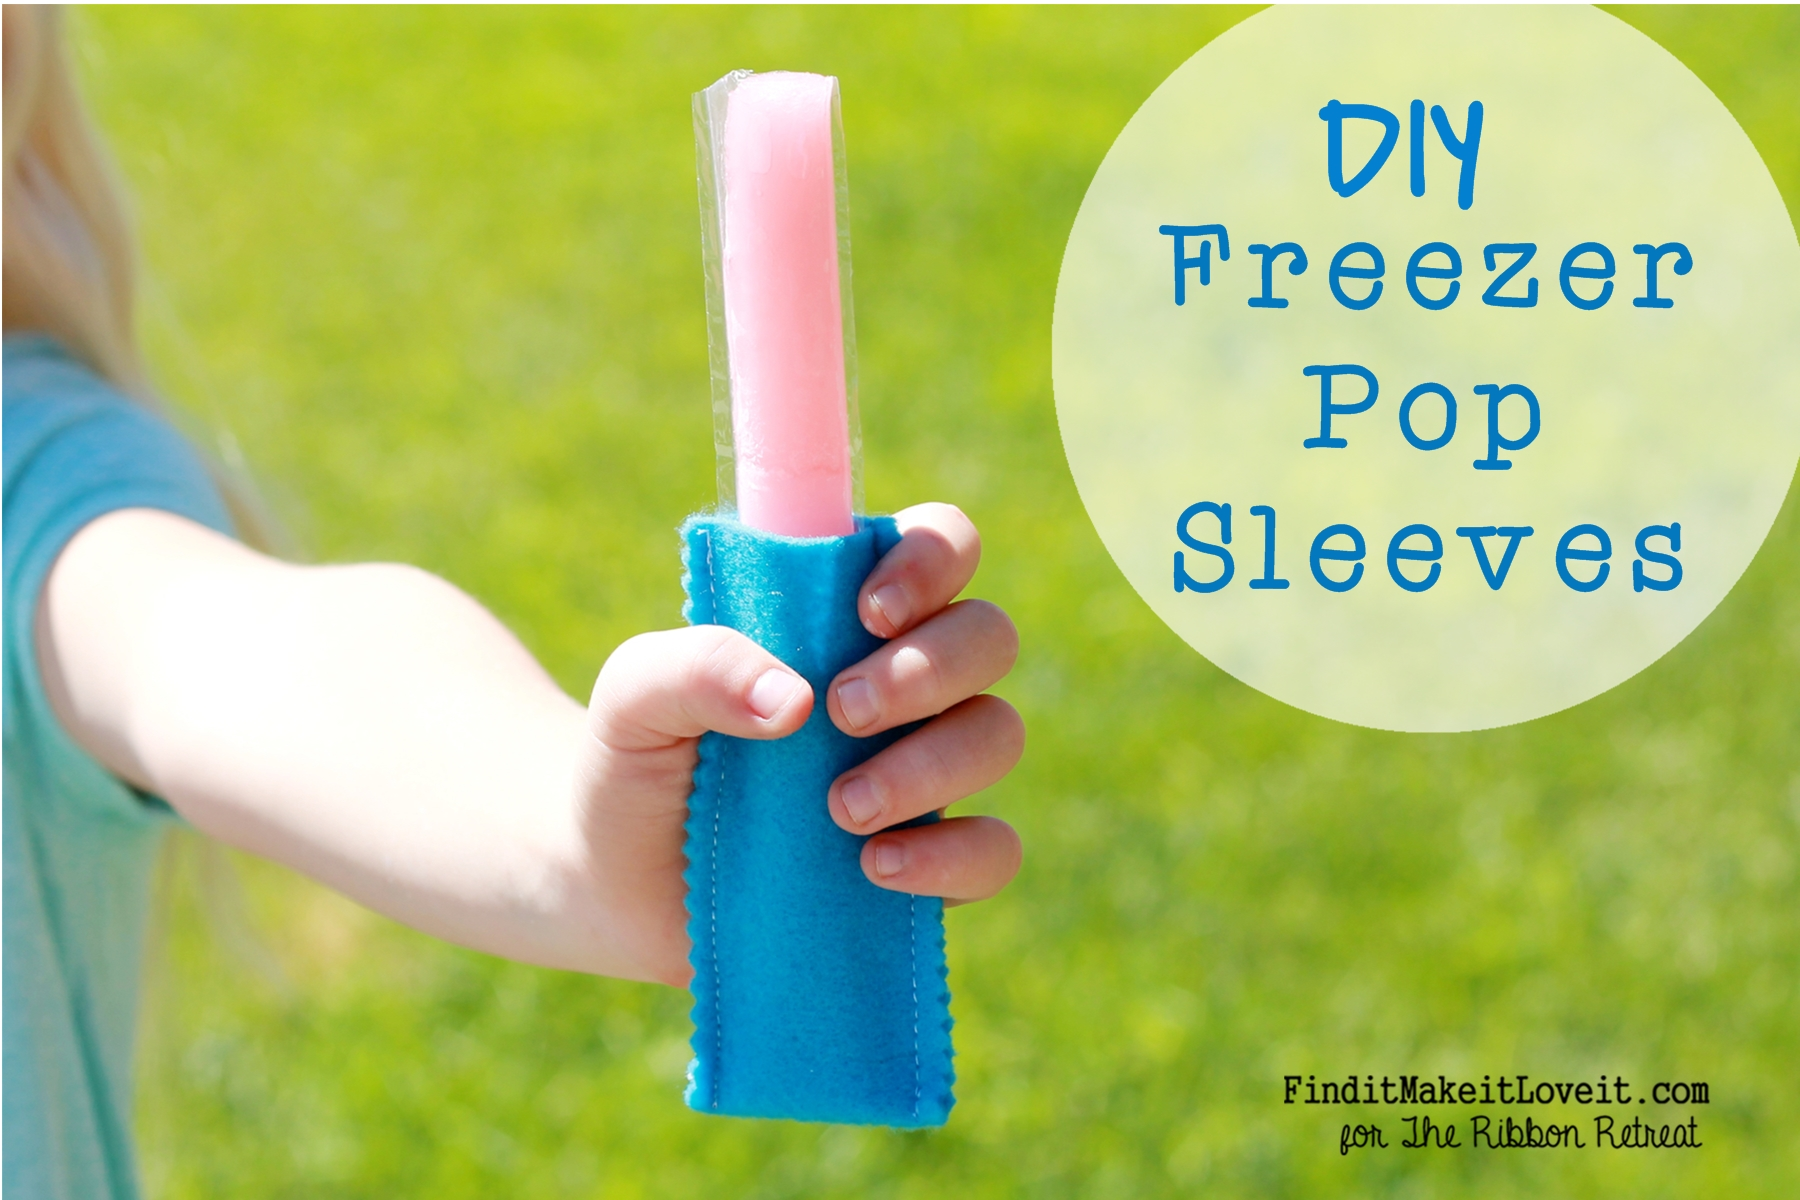 DIY Freezer Pop Sleeves (4)